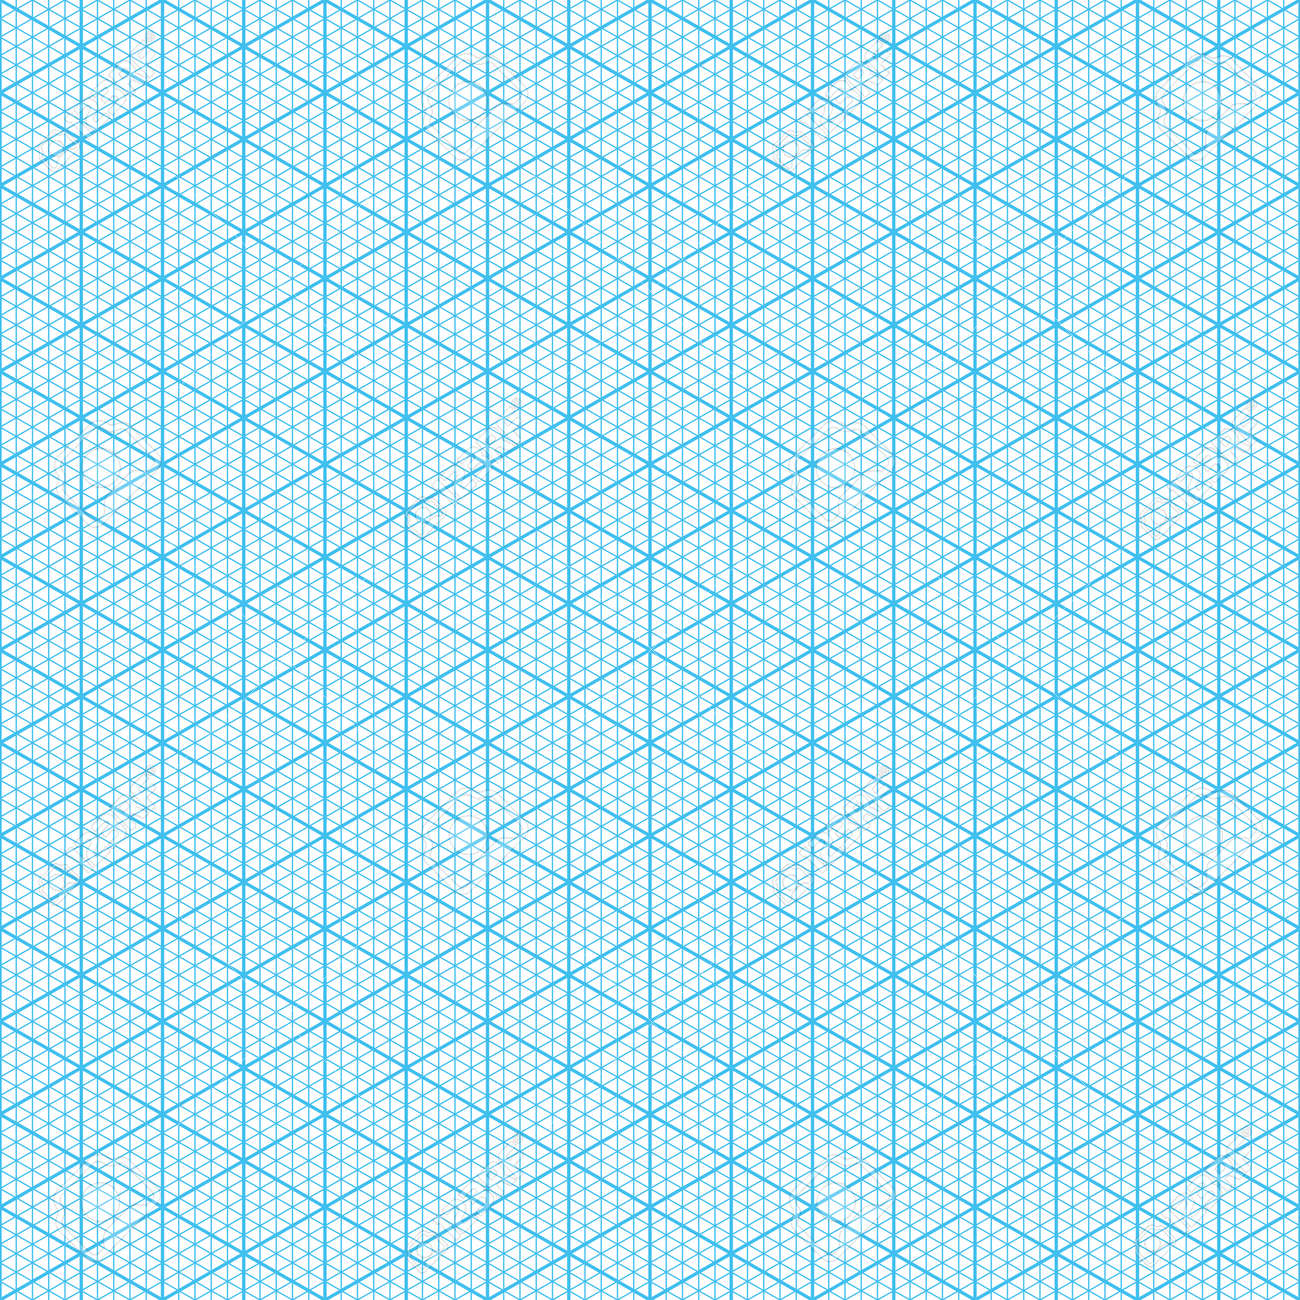 Cool 1 Circle Template Tiny 1 Year Experience Resume Format For Net Developer Square 10 Best Resume Services 10 Envelope Window Template Youthful 10 Off Coupon Template Orange10 Tips For A Great Resume Doc.#13501725: Isometric Graph Paper \u2013 Printable Isometric Graph ..